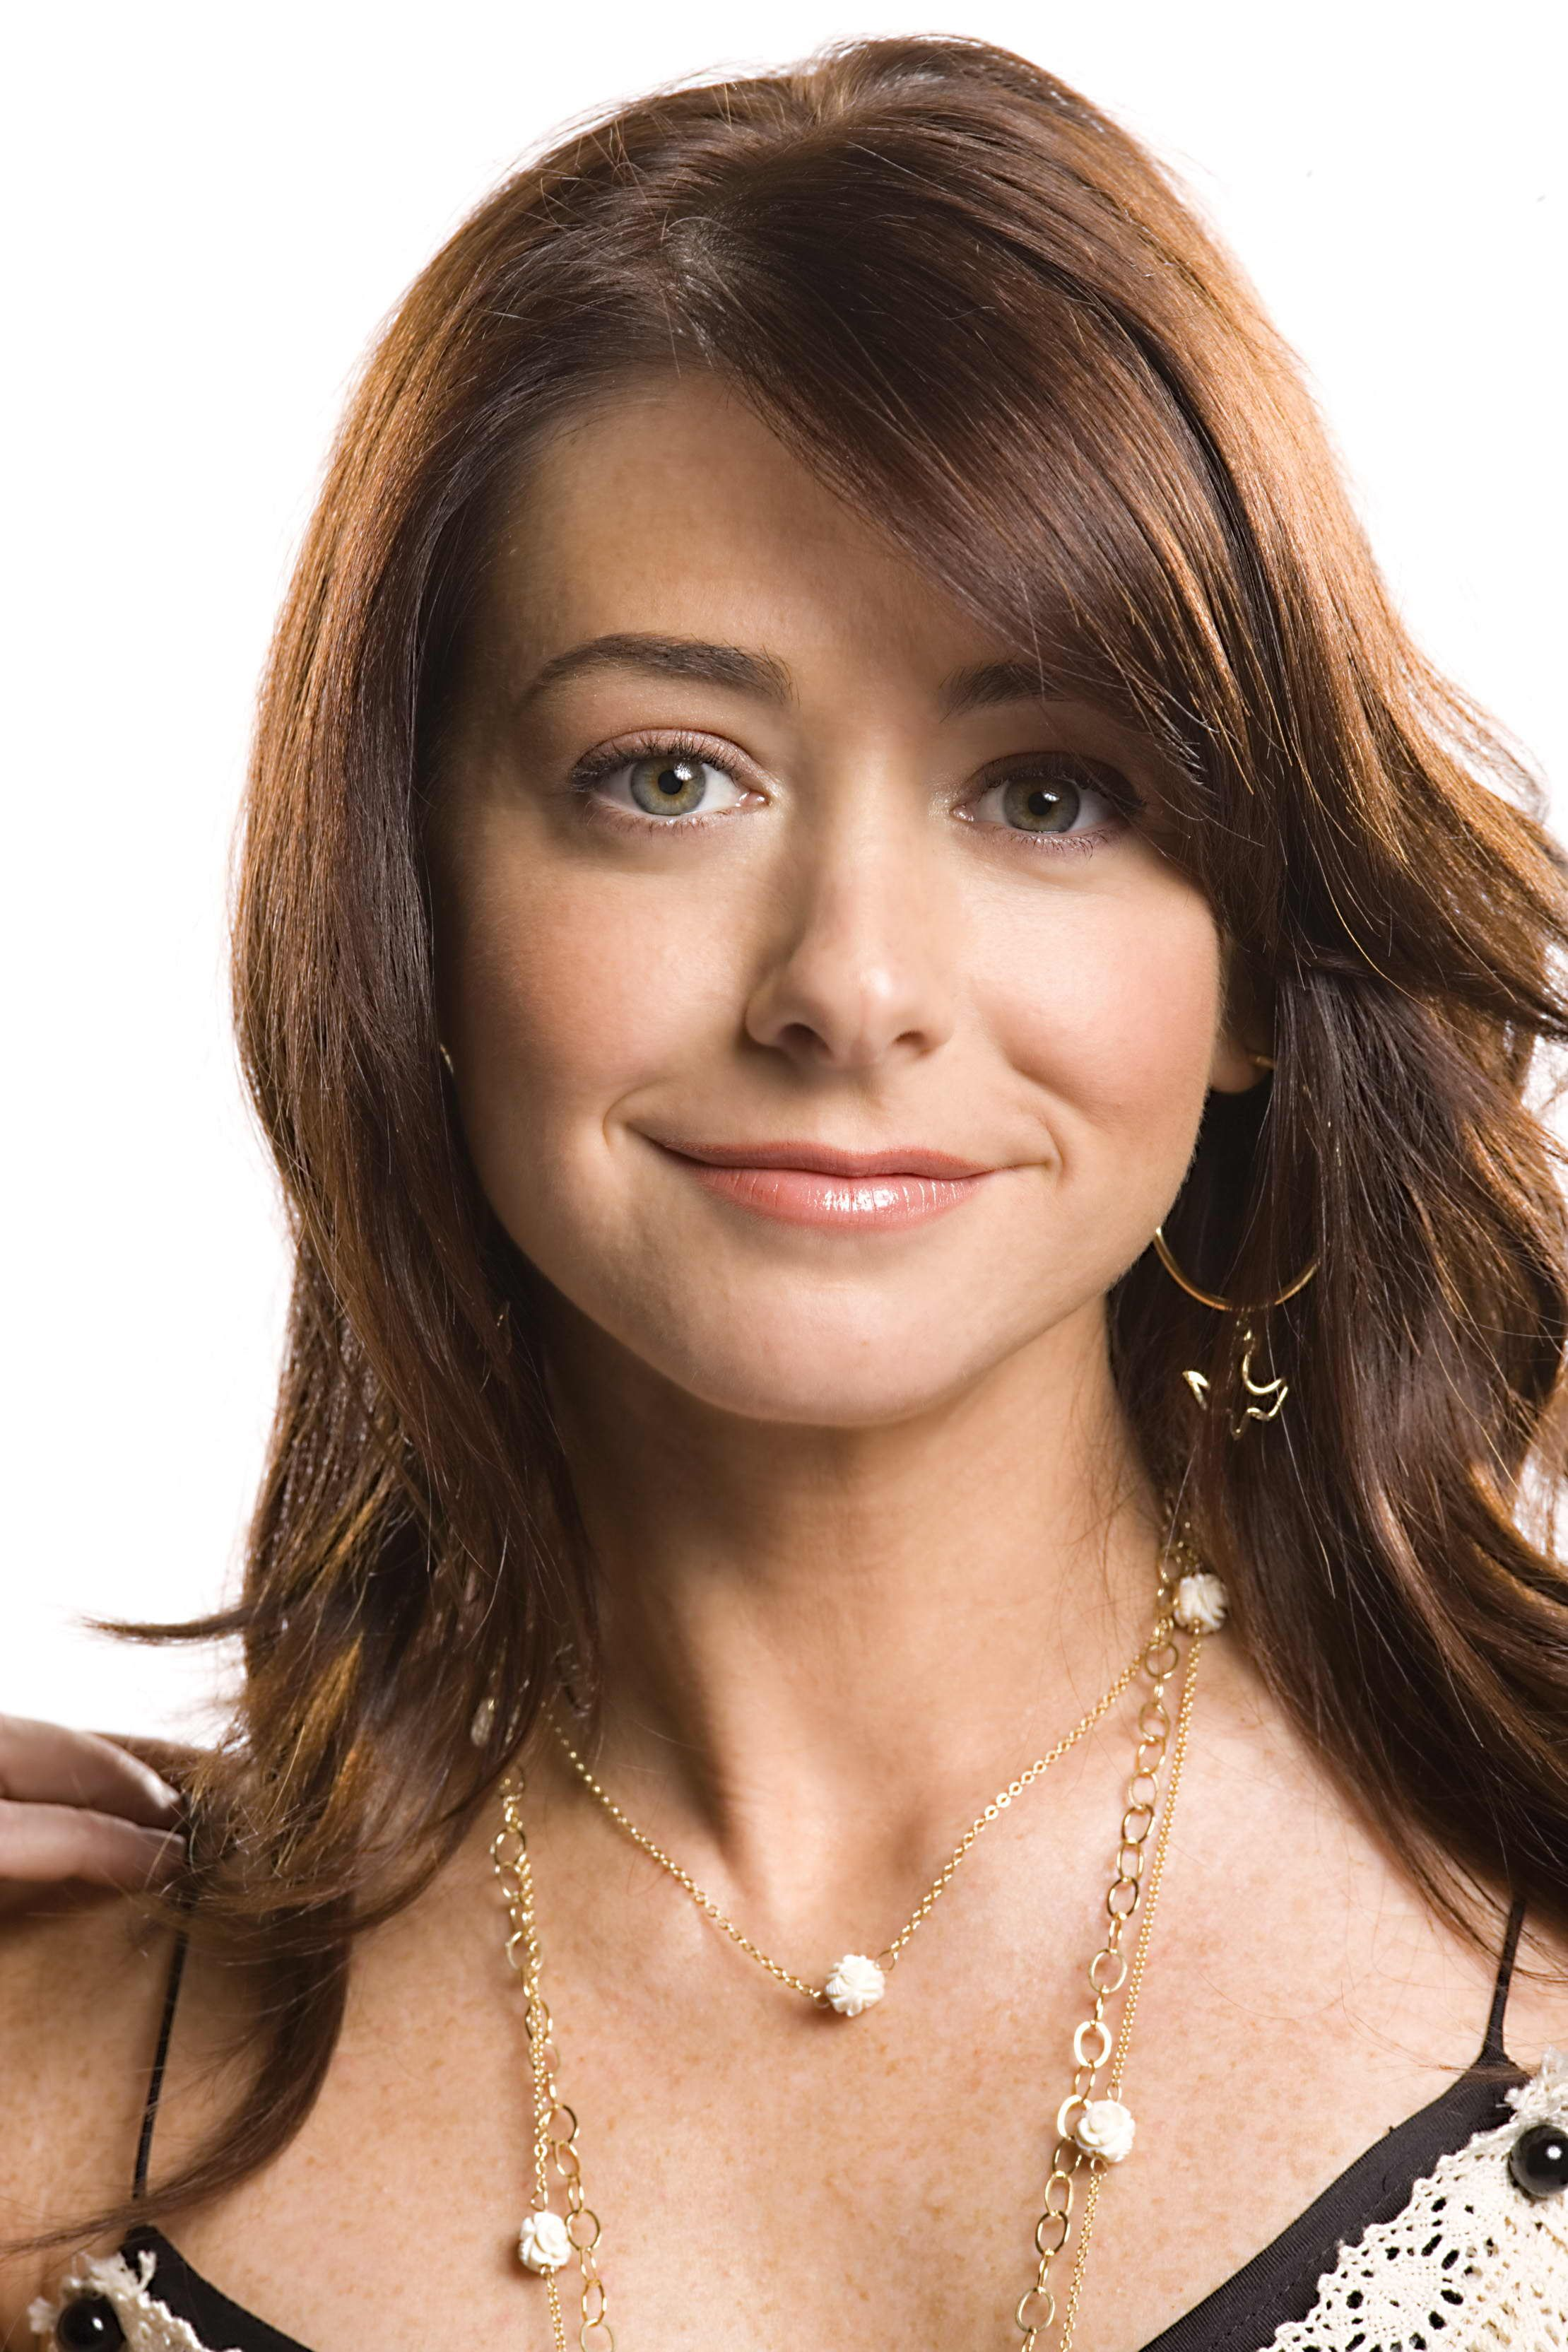 picture Alyson Hannigan born March 24, 1974 (age 44)